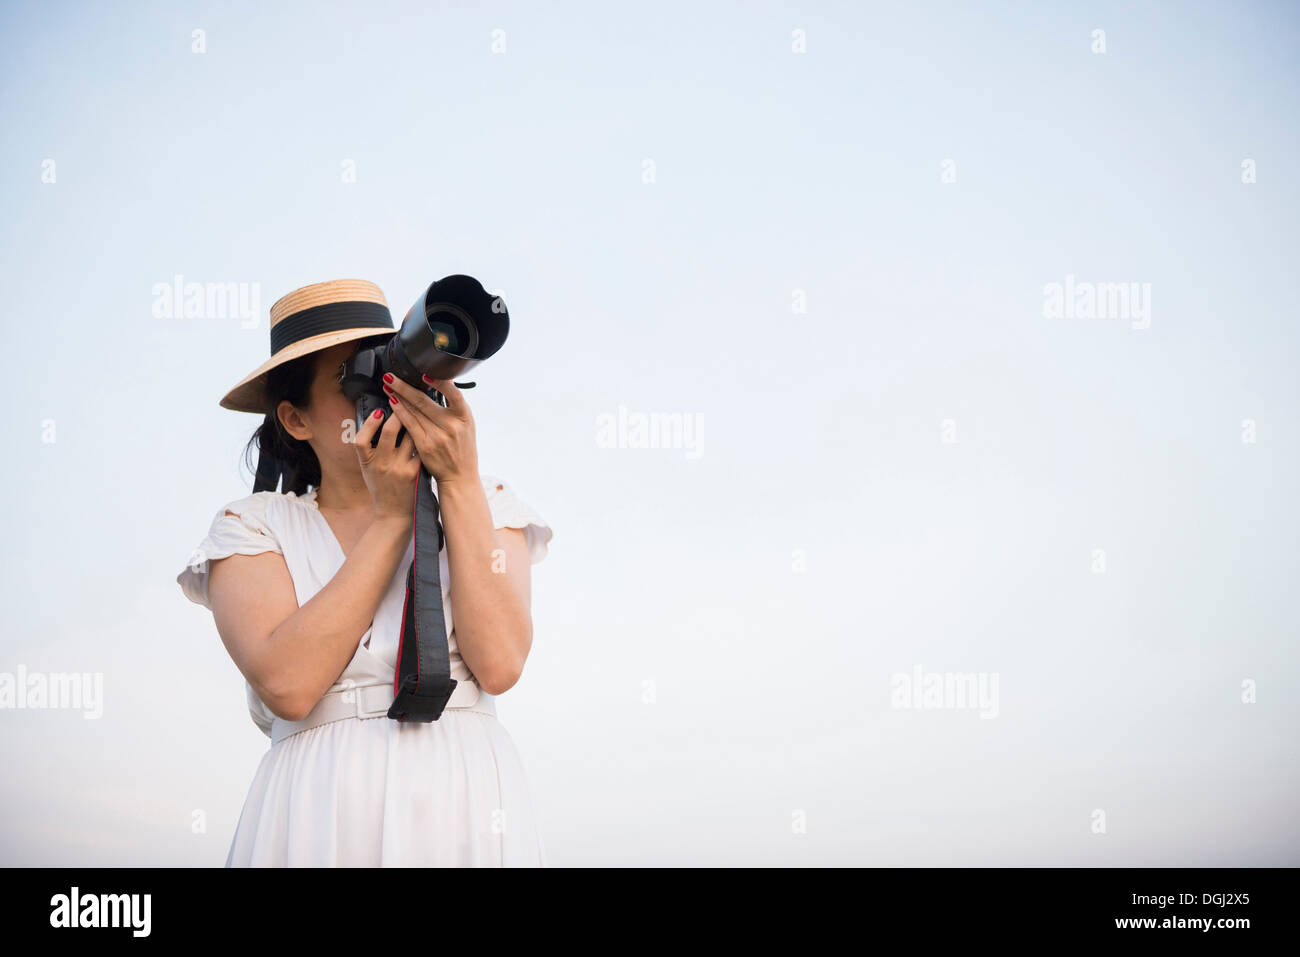 Woman taking photograph against clear sky - Stock Image